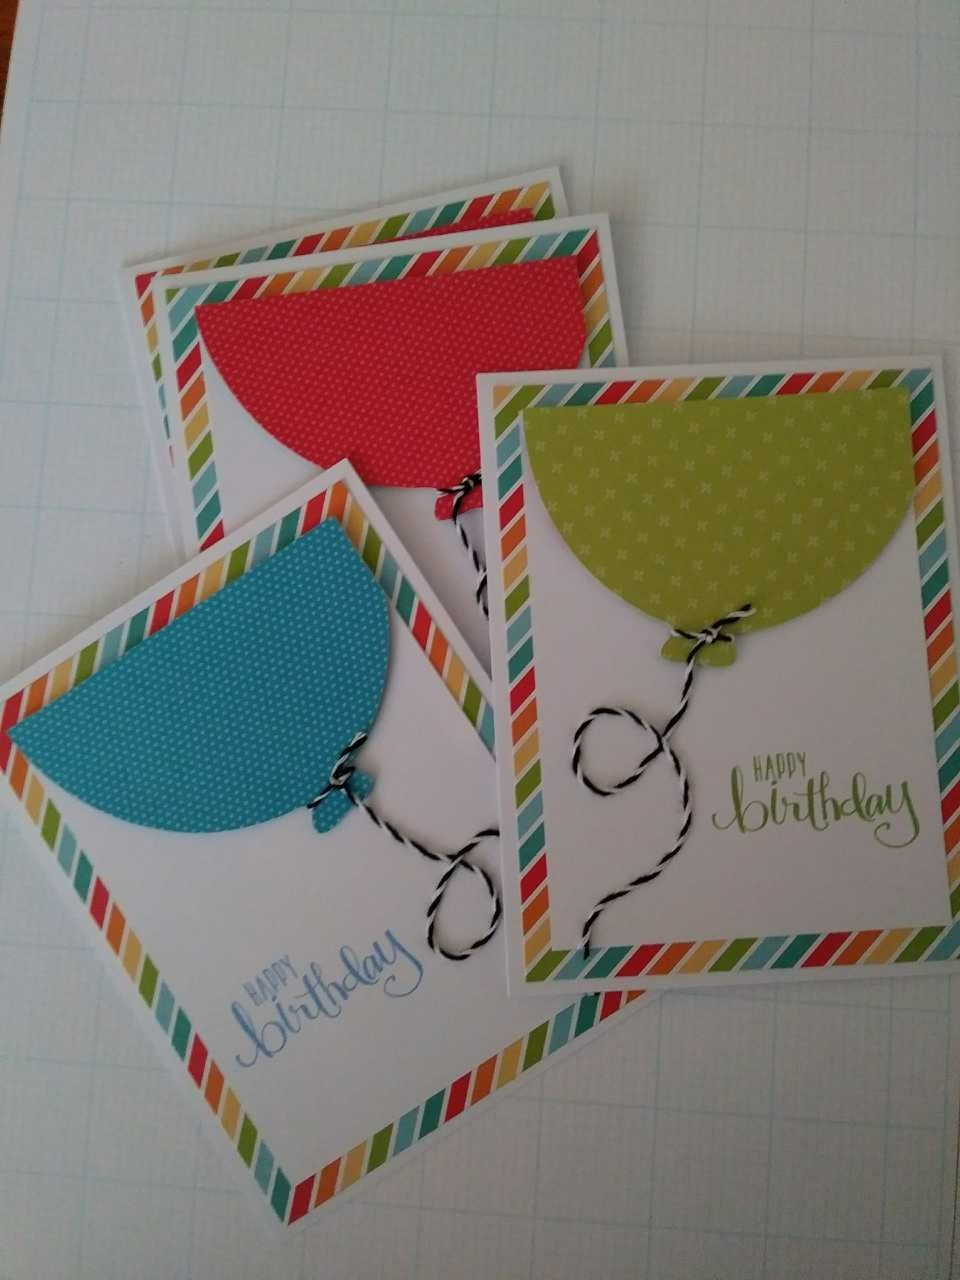 32 Handmade Birthday Card Ideas And Images Birthday Card Sayings Husband Birthday Card Handmade Birthday Cards